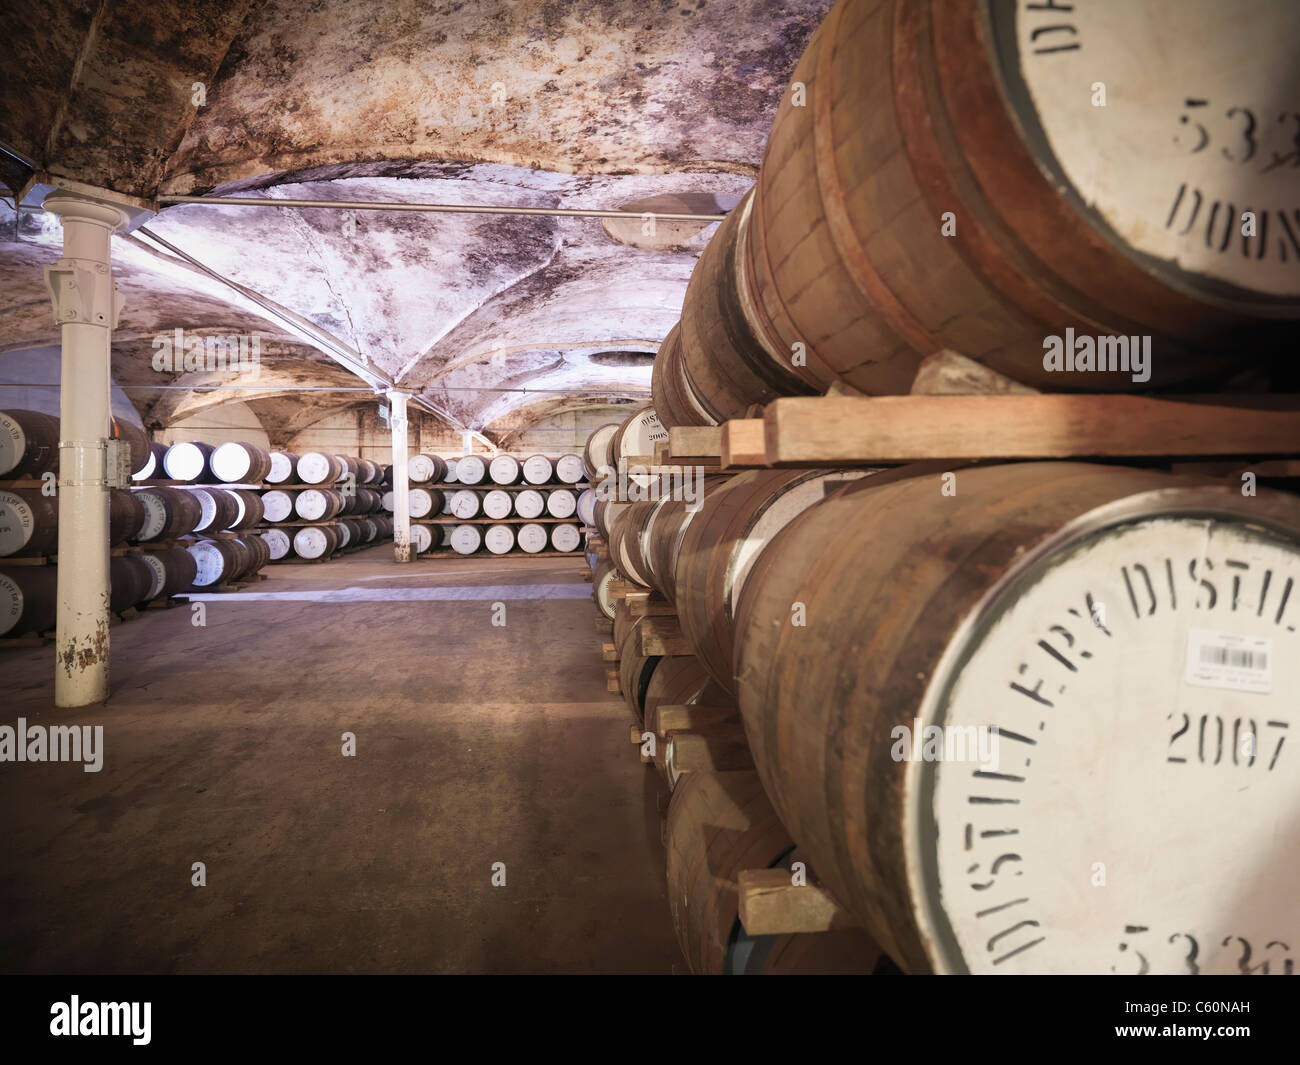 Barrels of whisky aging in distillery - Stock Image